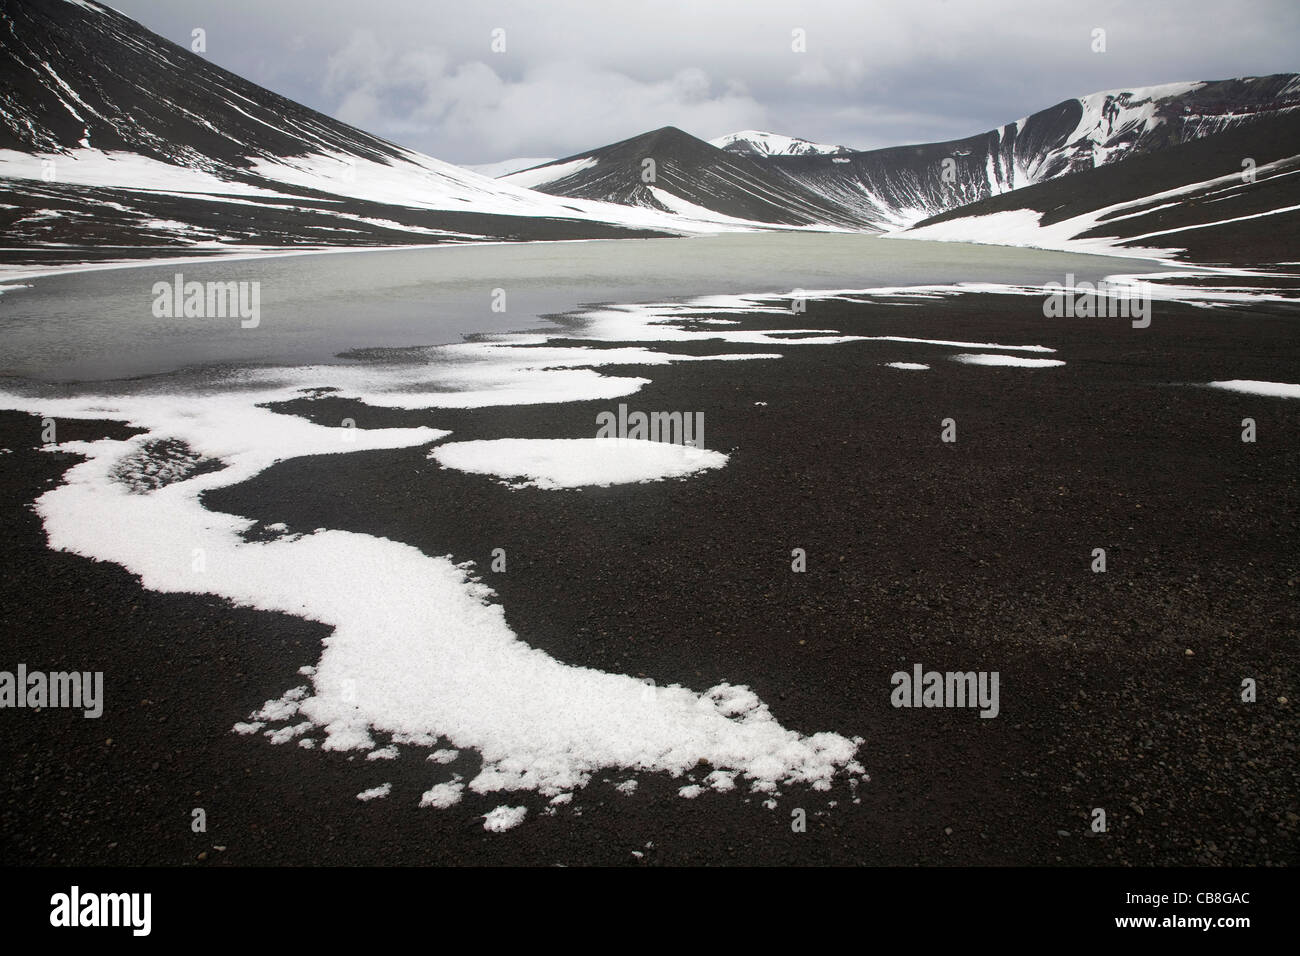 Mountains and lake in caldera of active volcano on Deception Island, South Shetland Islands, Antarctica - Stock Image